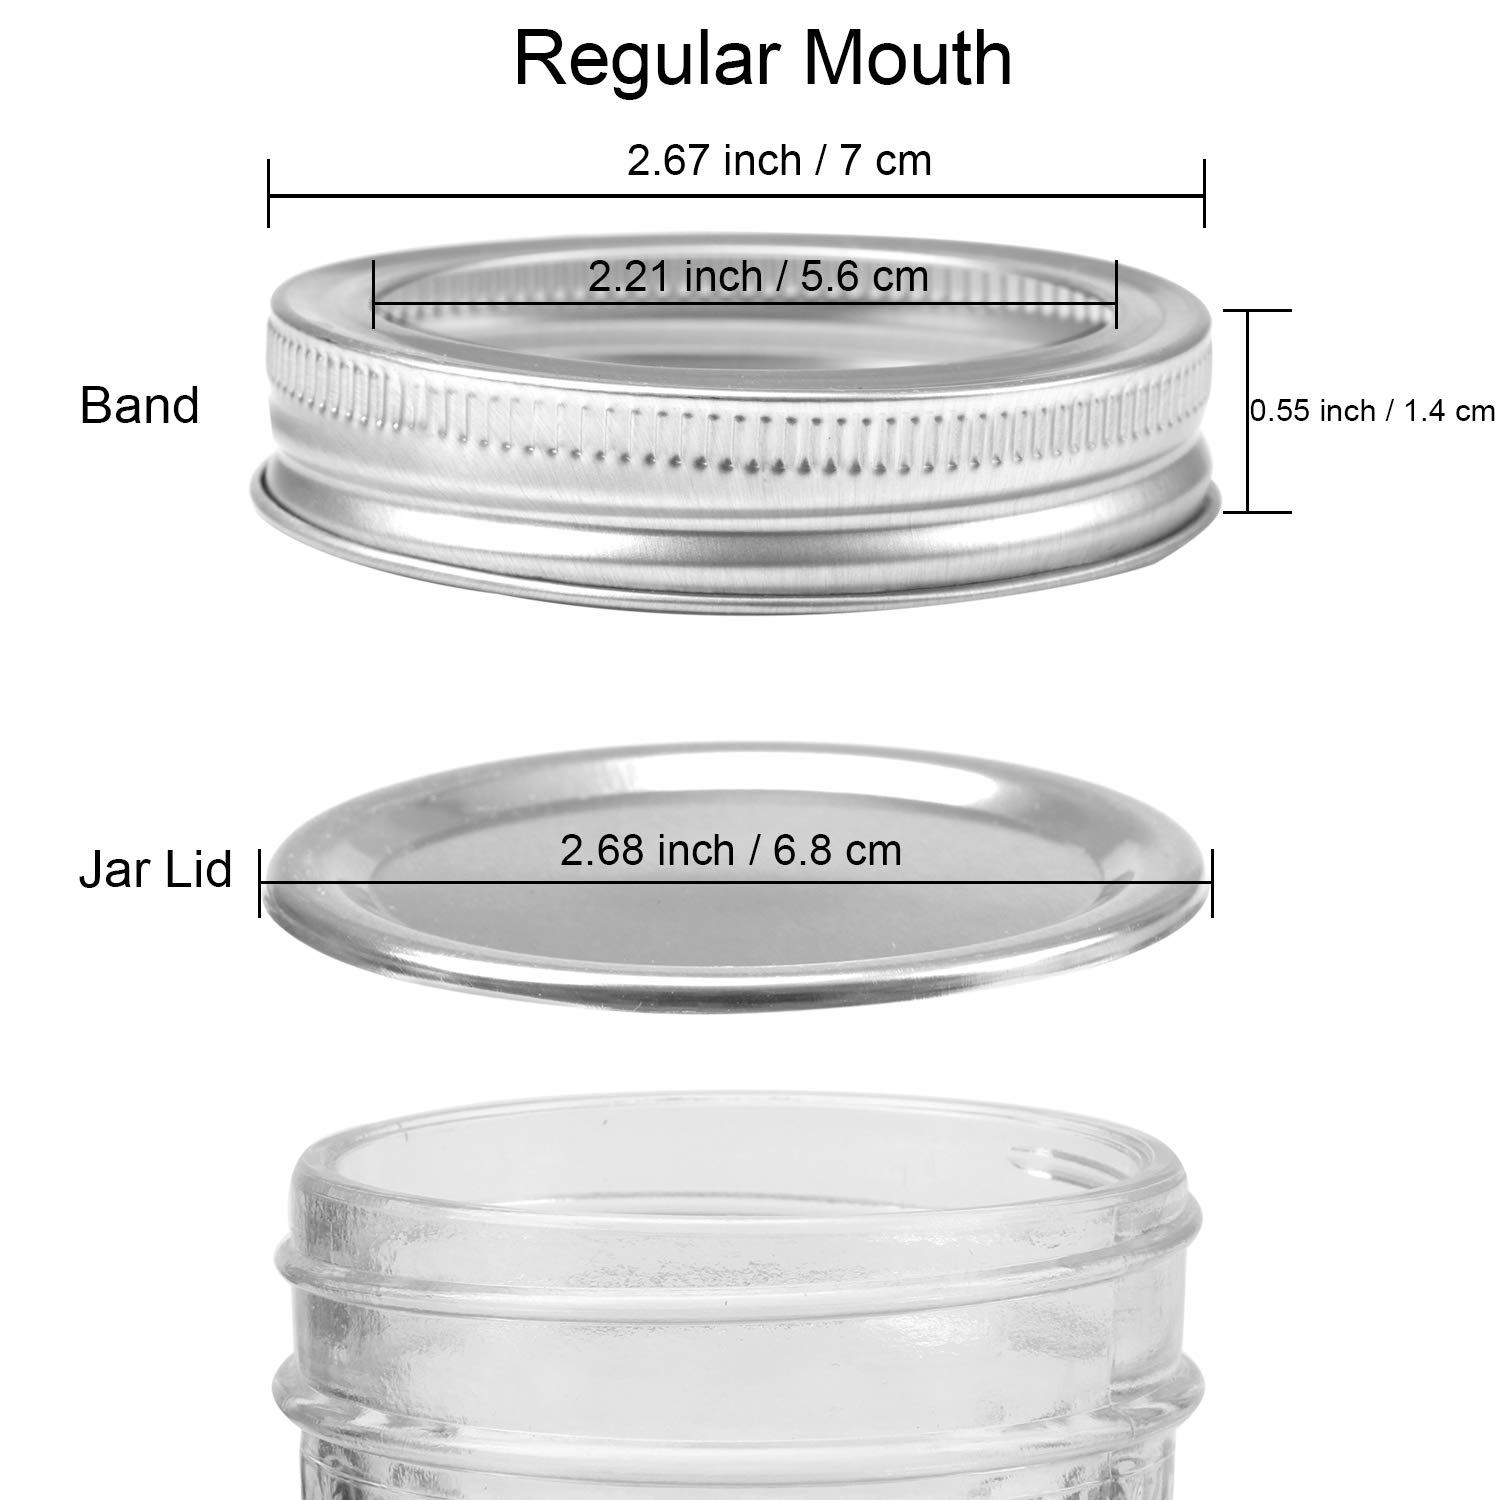 Includes Lid and Band 20, Regular Mouth Resinta 20 Pack Regular Mouth Mason Jar Split-Type Lids Silicone Seals Leak Proof Secure Mason Storage Solid Caps